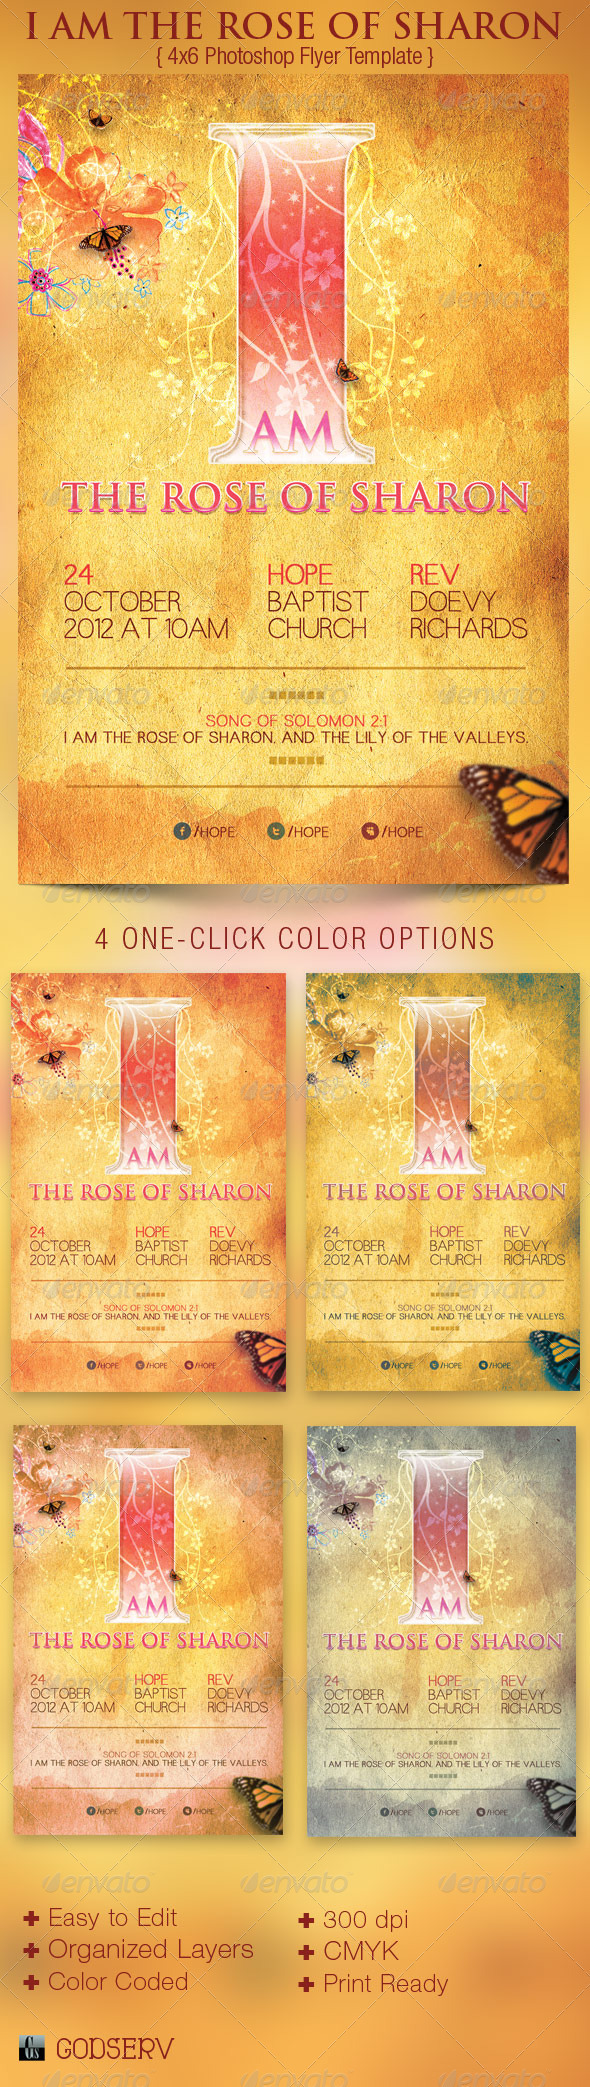 I Am The Rose of Sharon Church Flyer Template - Church Flyers